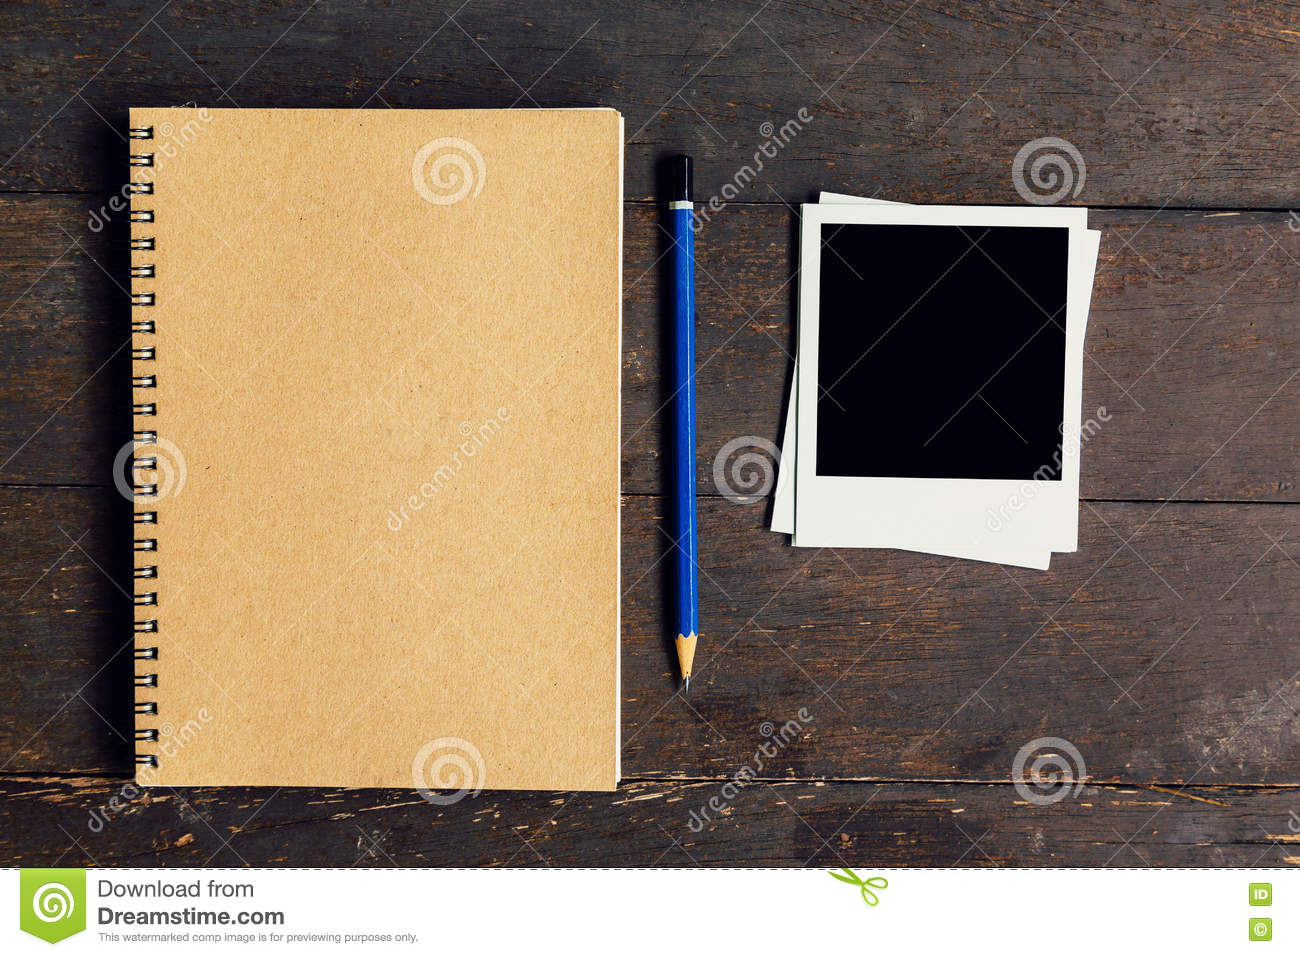 Brown book and pencil with frame photo on wood table background